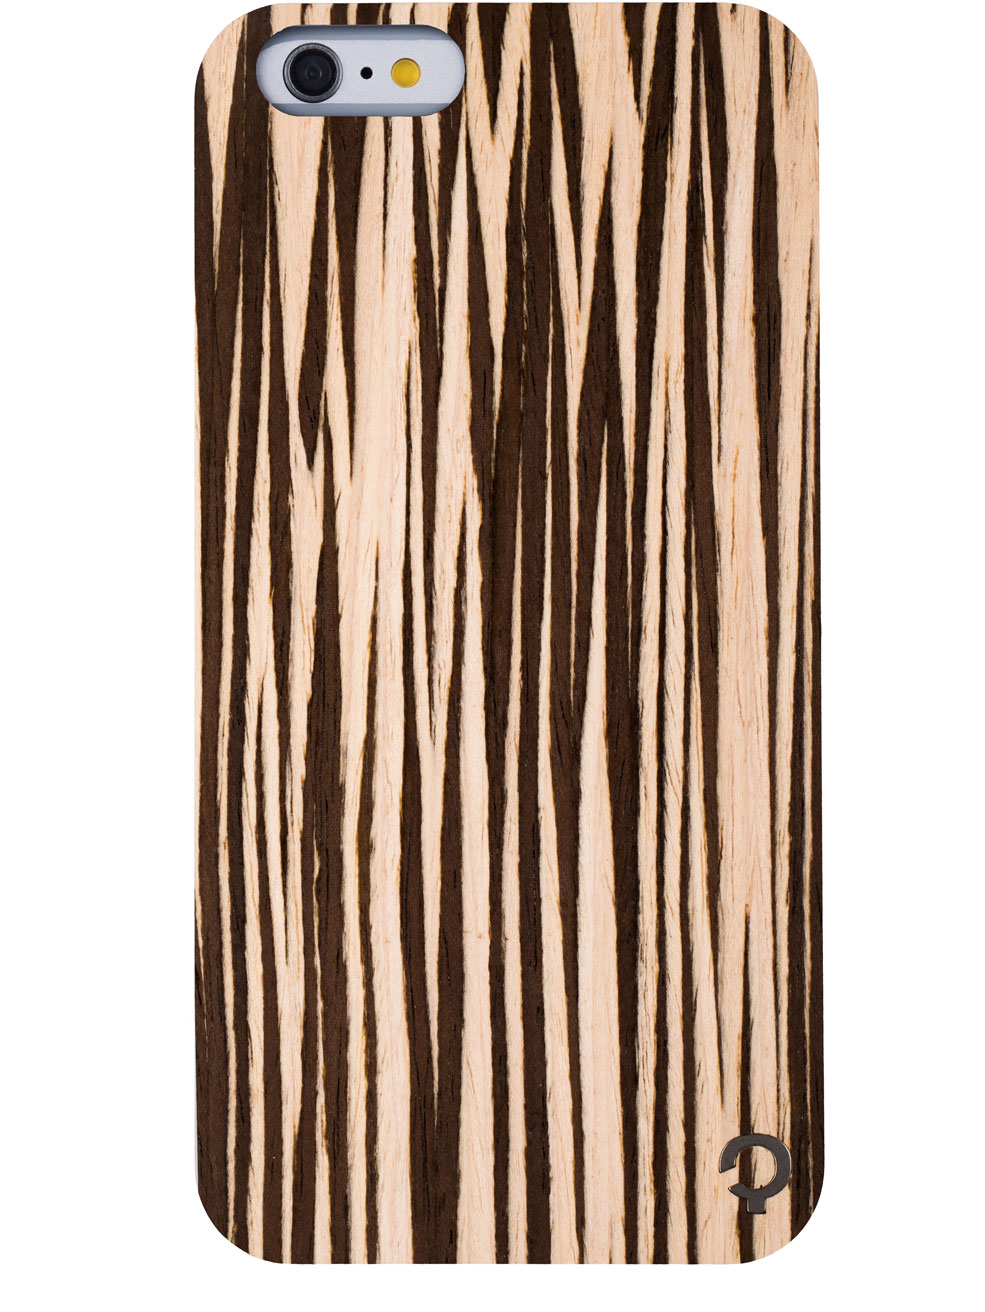 Wooden-case-iPhone-6-plus-Premium-Zebrano